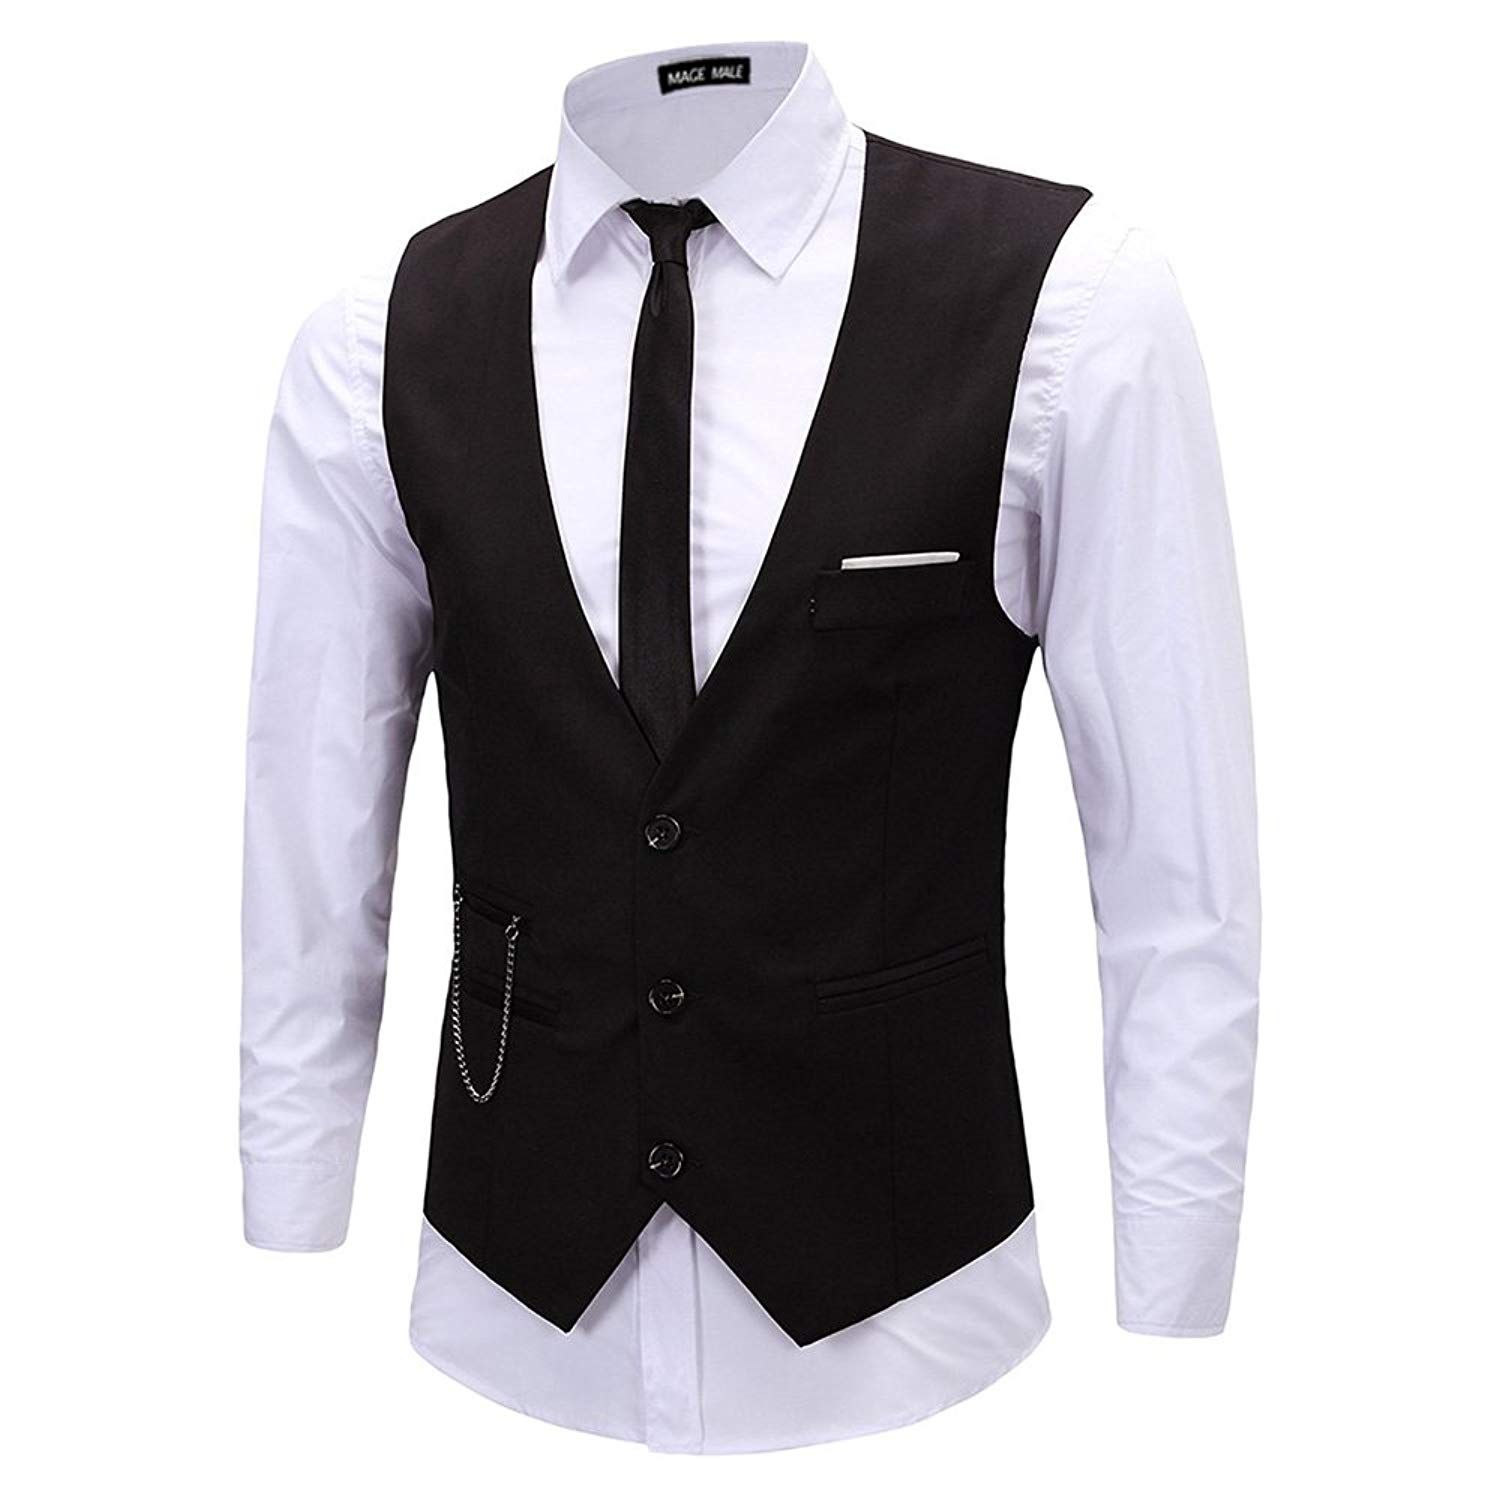 MAGE MALE Mens Slim Fit Suit Vests V-Neck Formal Business Sleeveless Dress Suit Separate Waistcoat